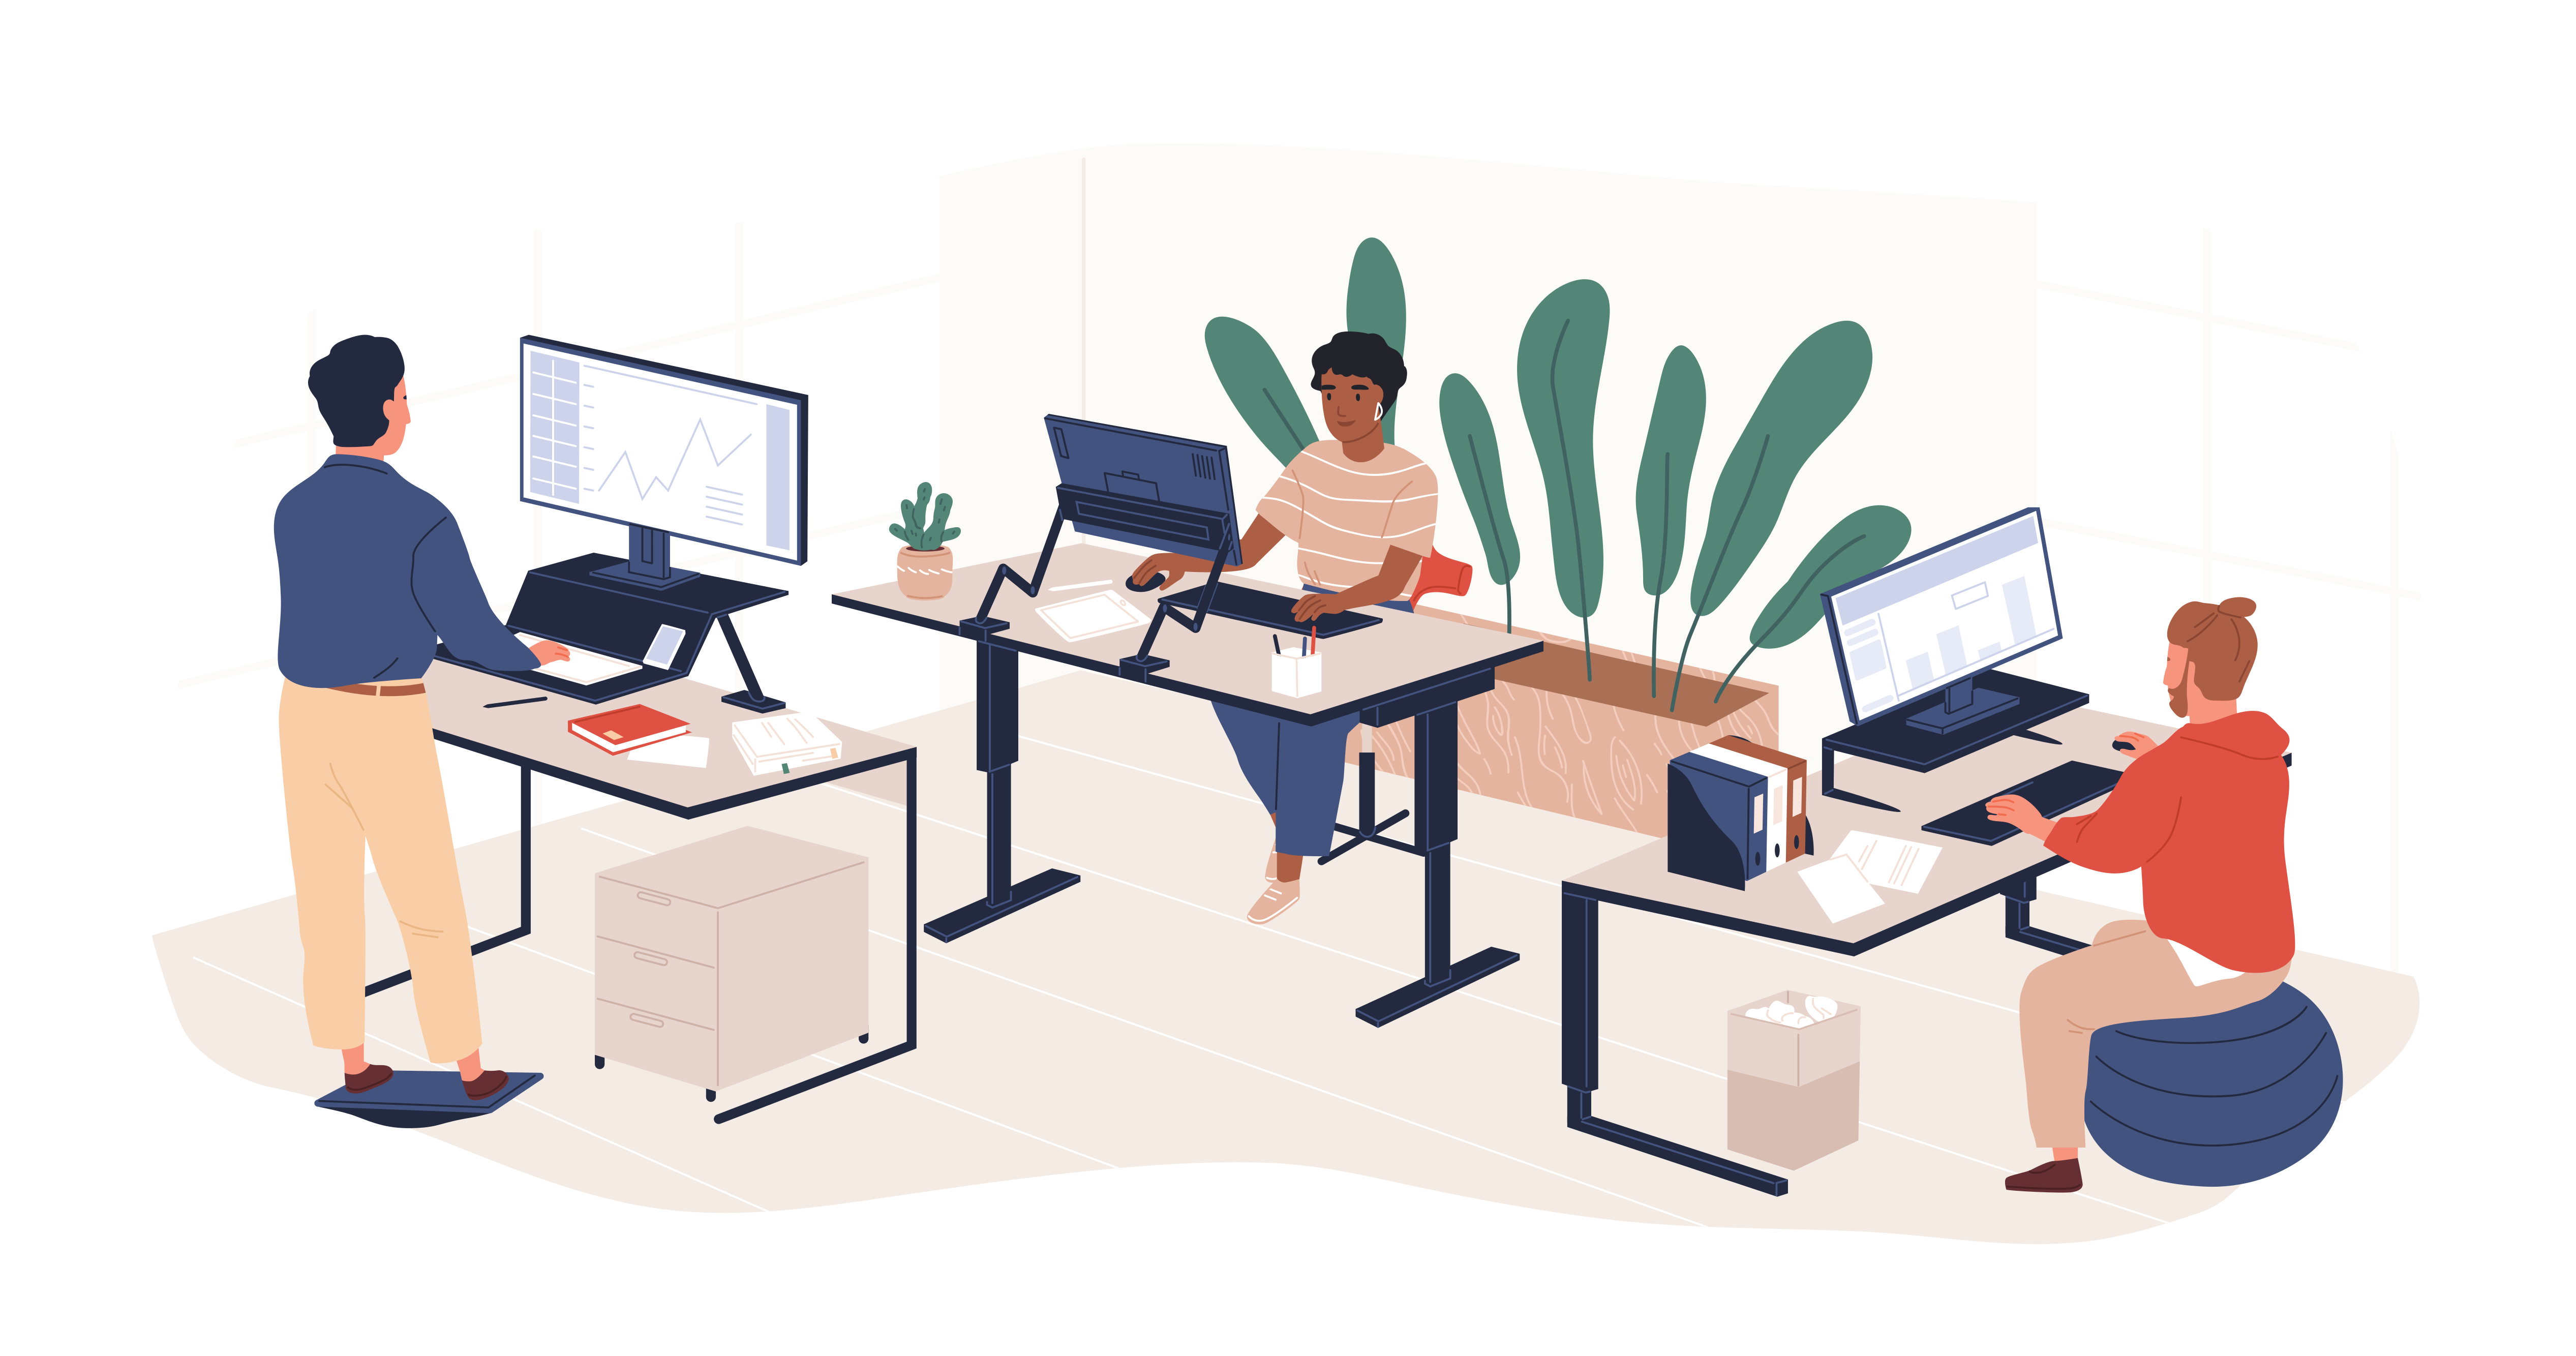 illustration of people working at desks - two sitting at desk and one at standing desk